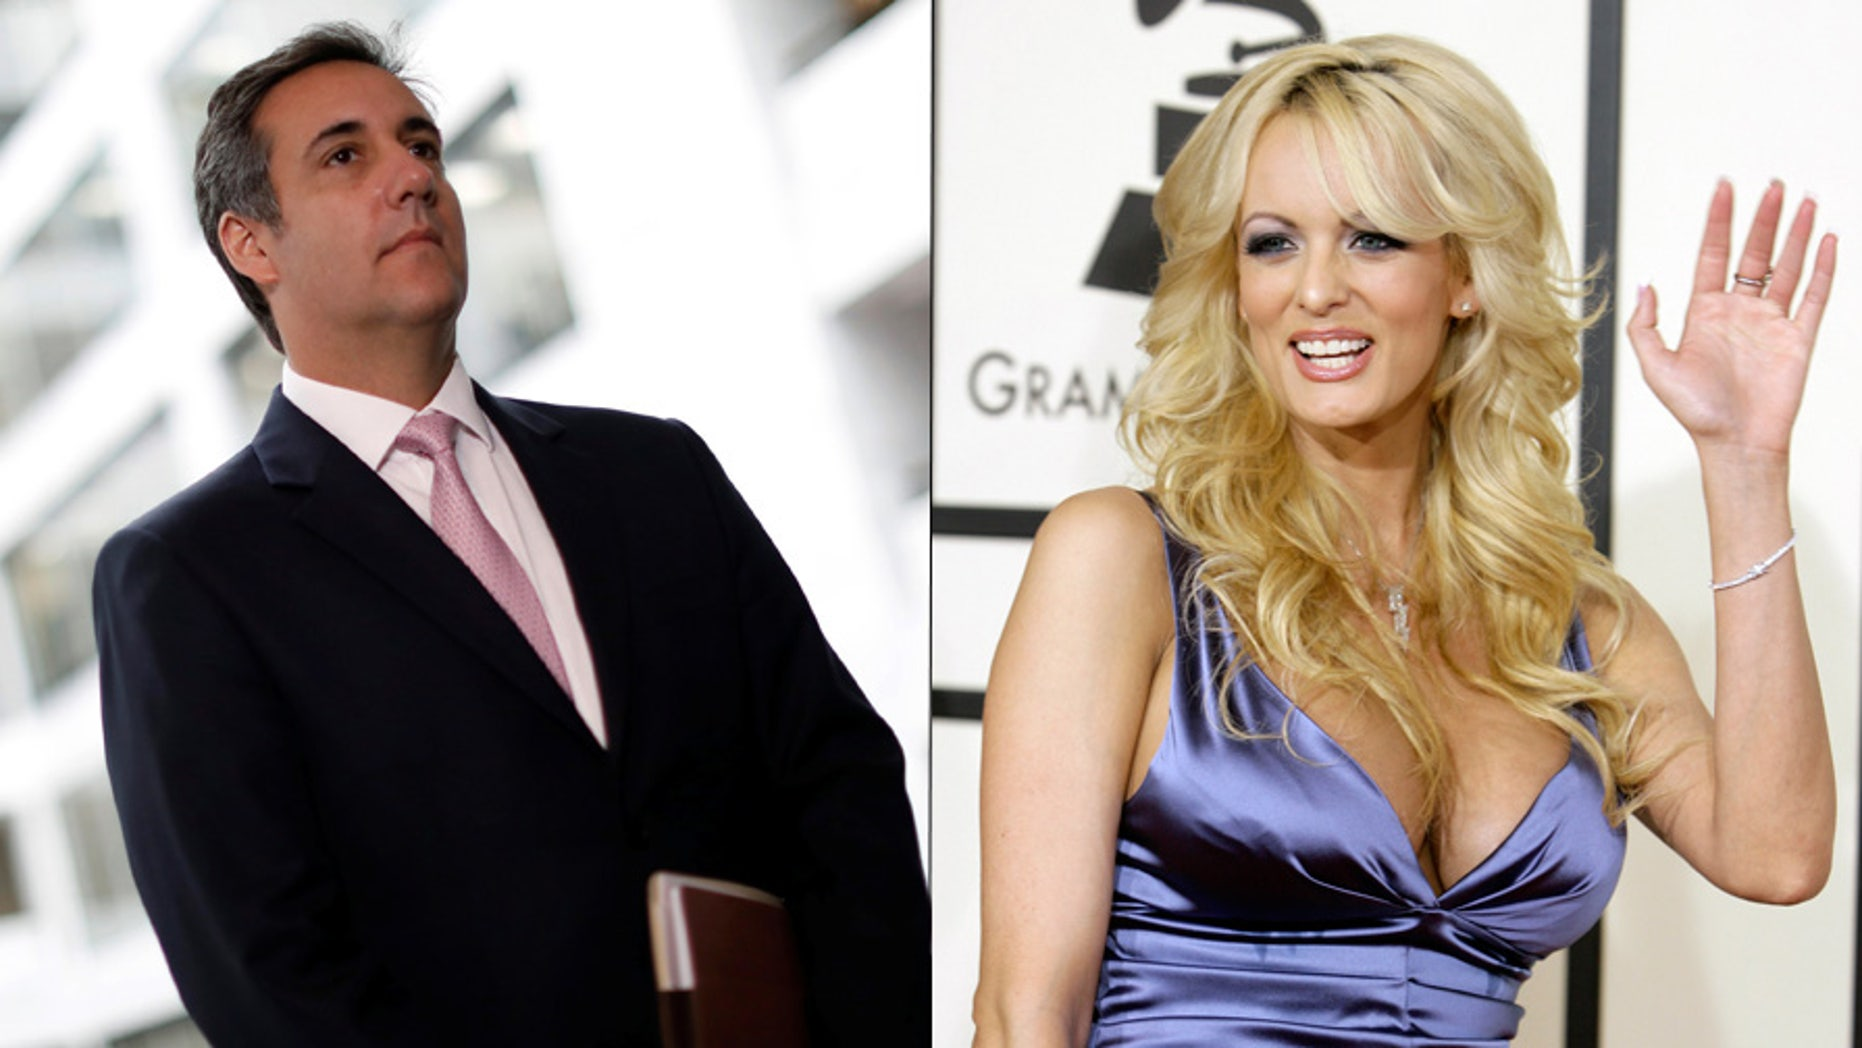 Trump attorney Michael Cohen claimed that his $130G payout to porn star Stormy Daniels came from his personal funds, and Daniels' attorney has corroborated that claim.